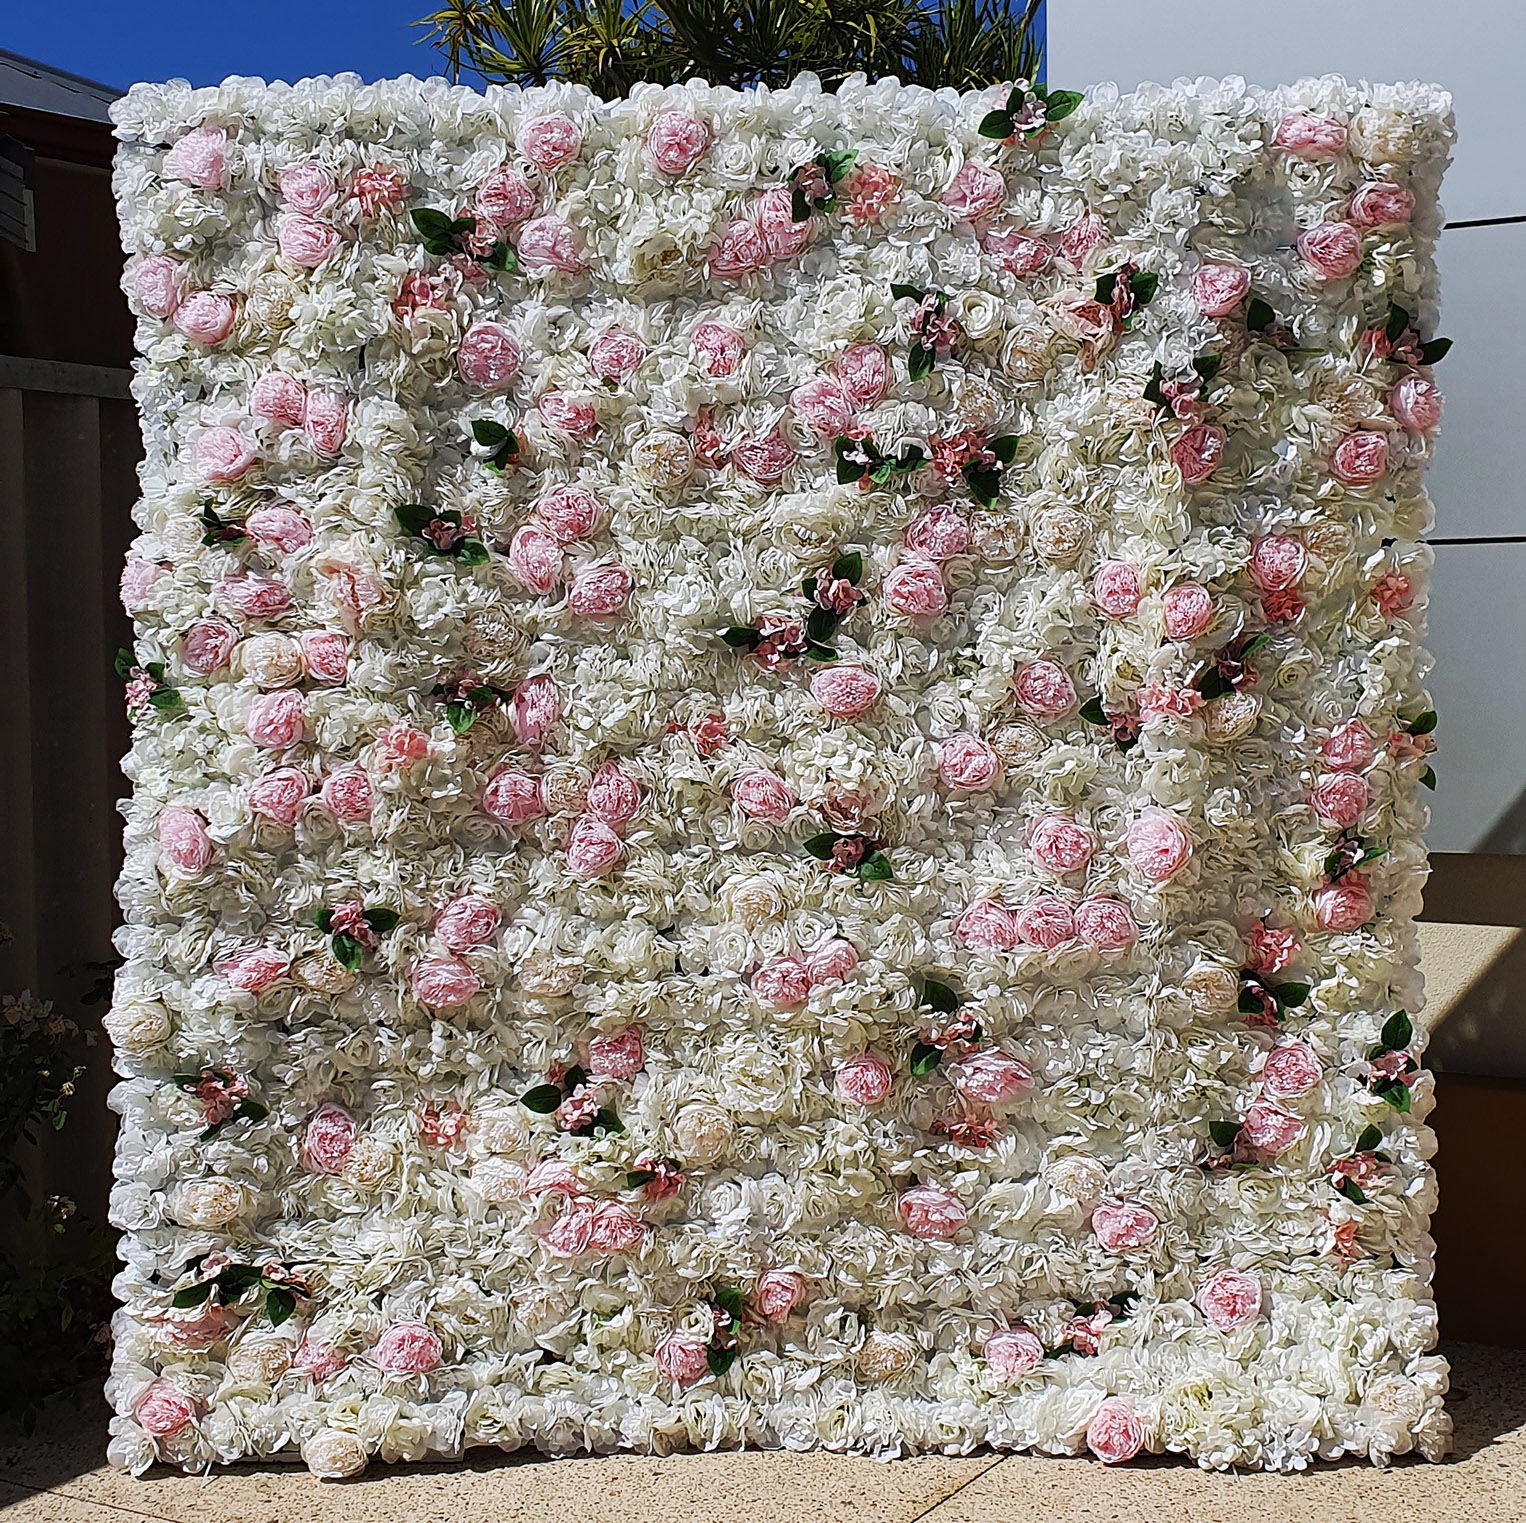 Pink Flower Wall $185.00